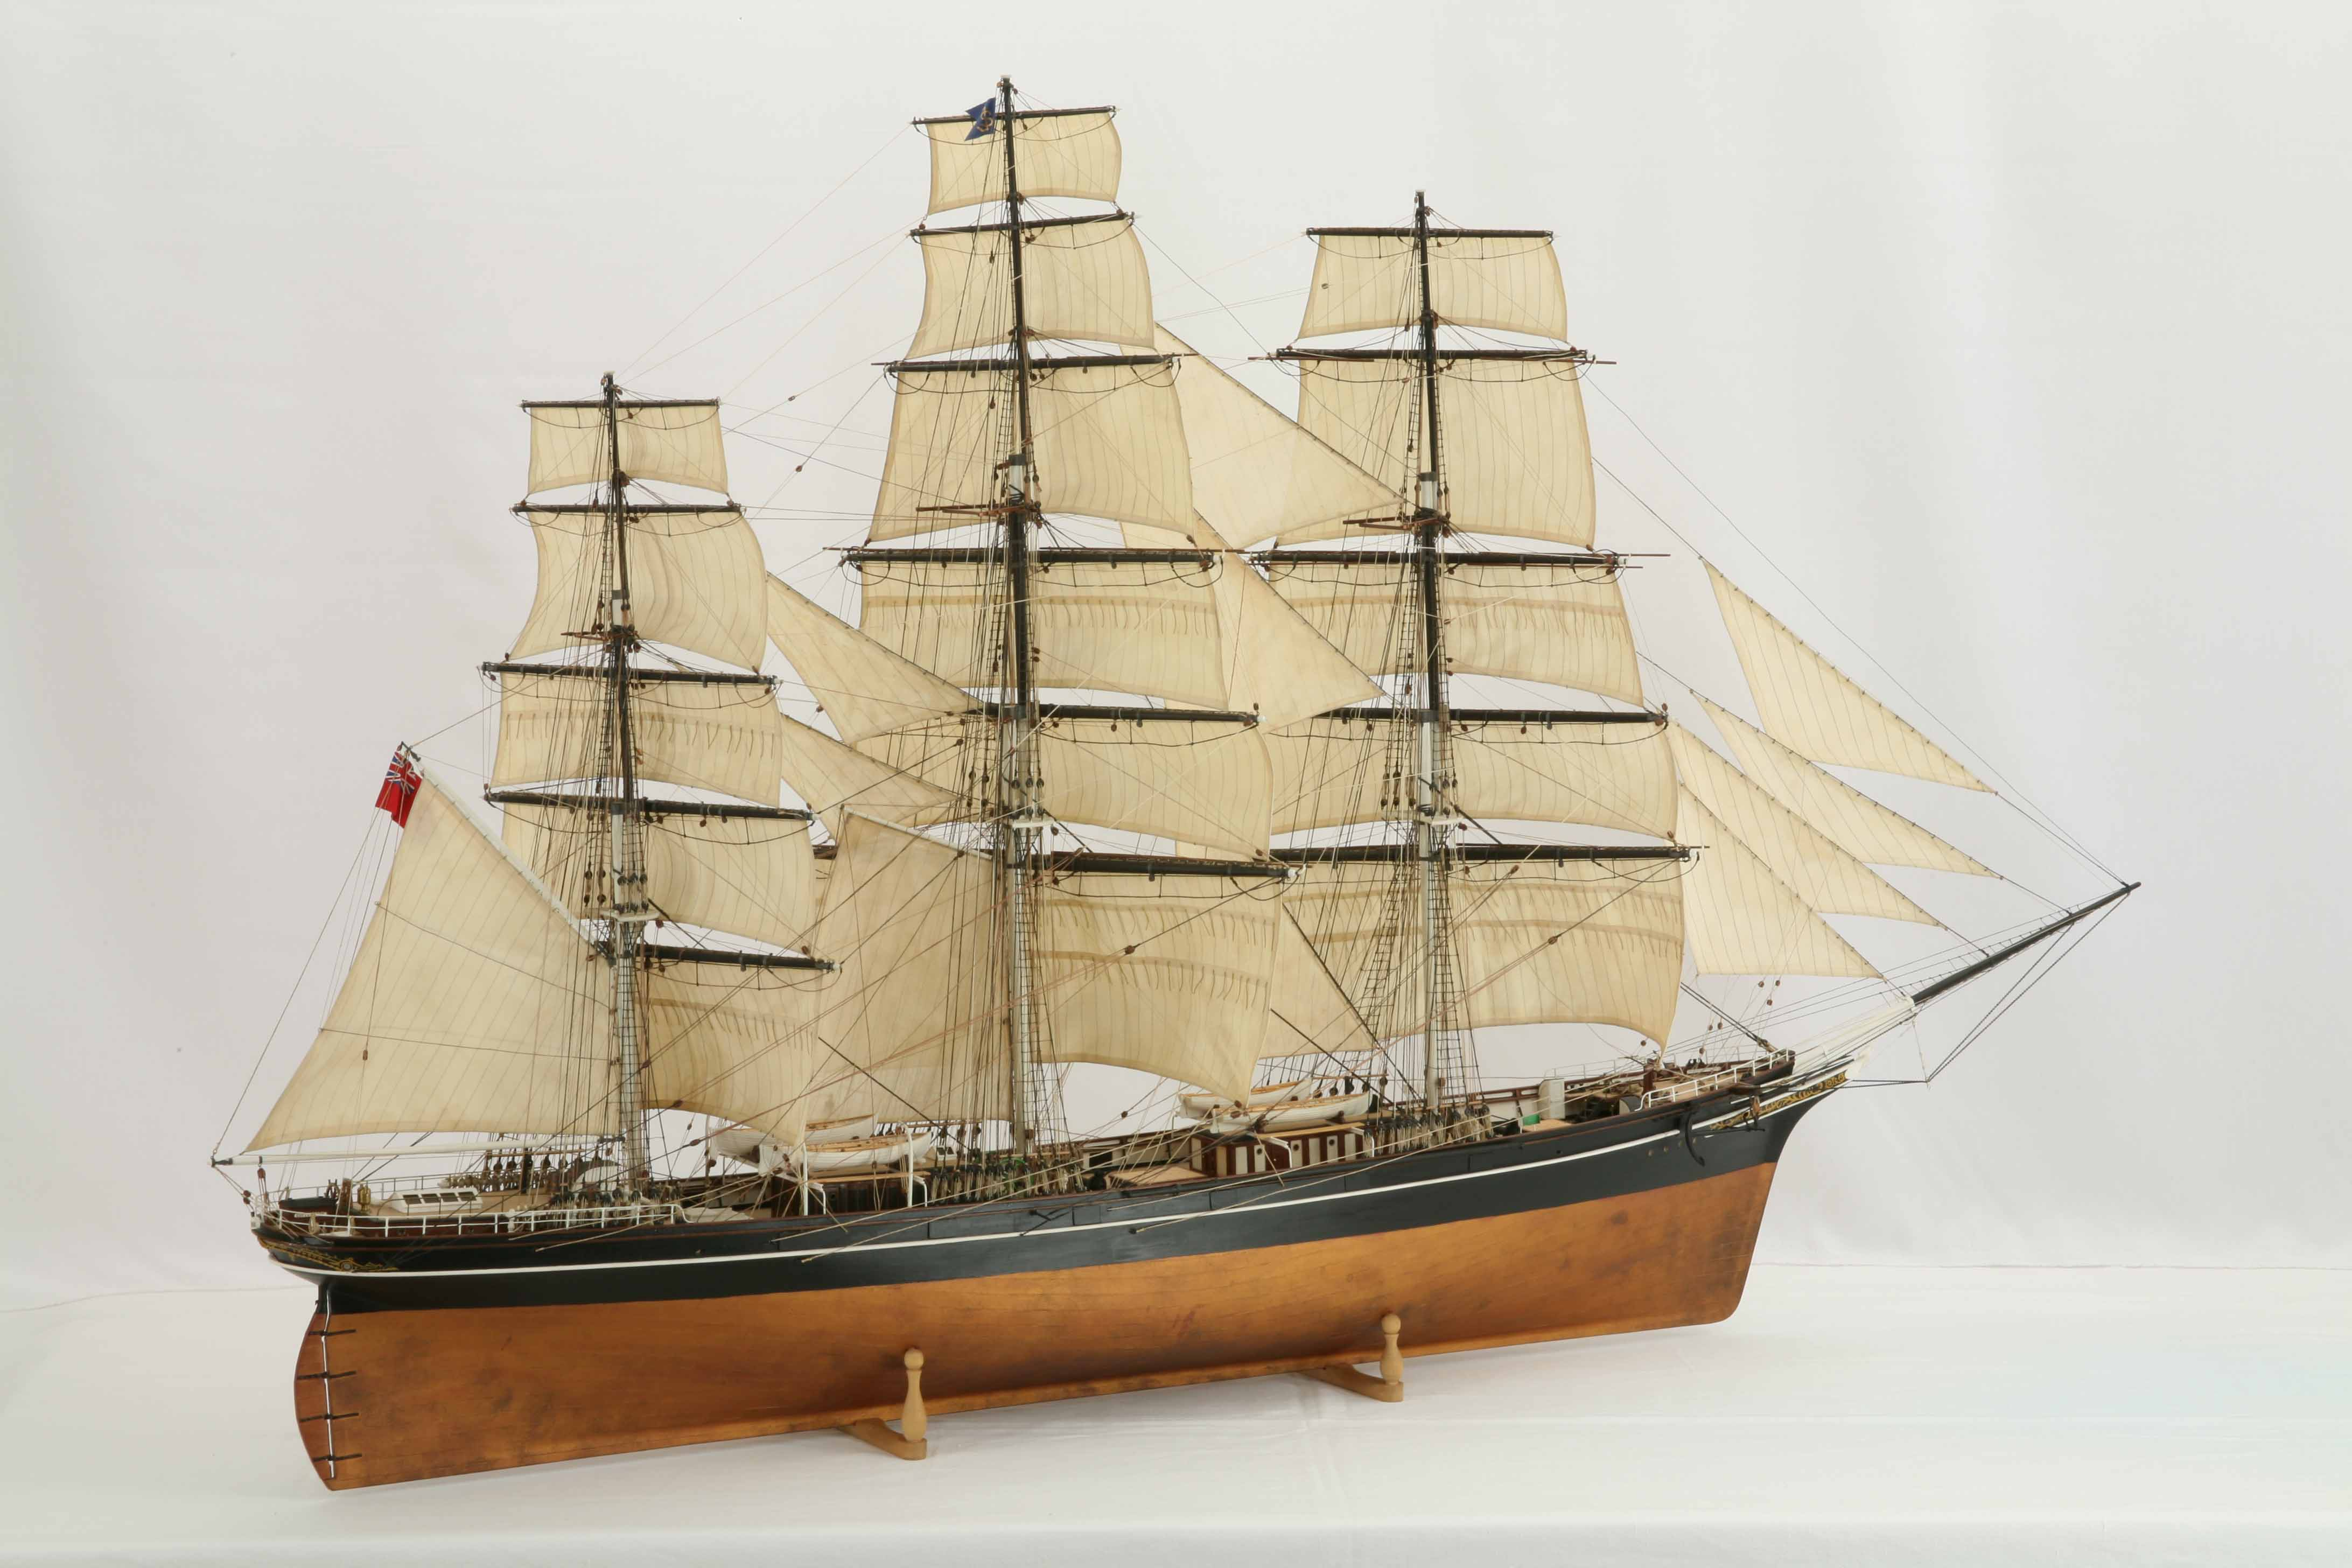 Ship model clipper Cutty Sark of 1869